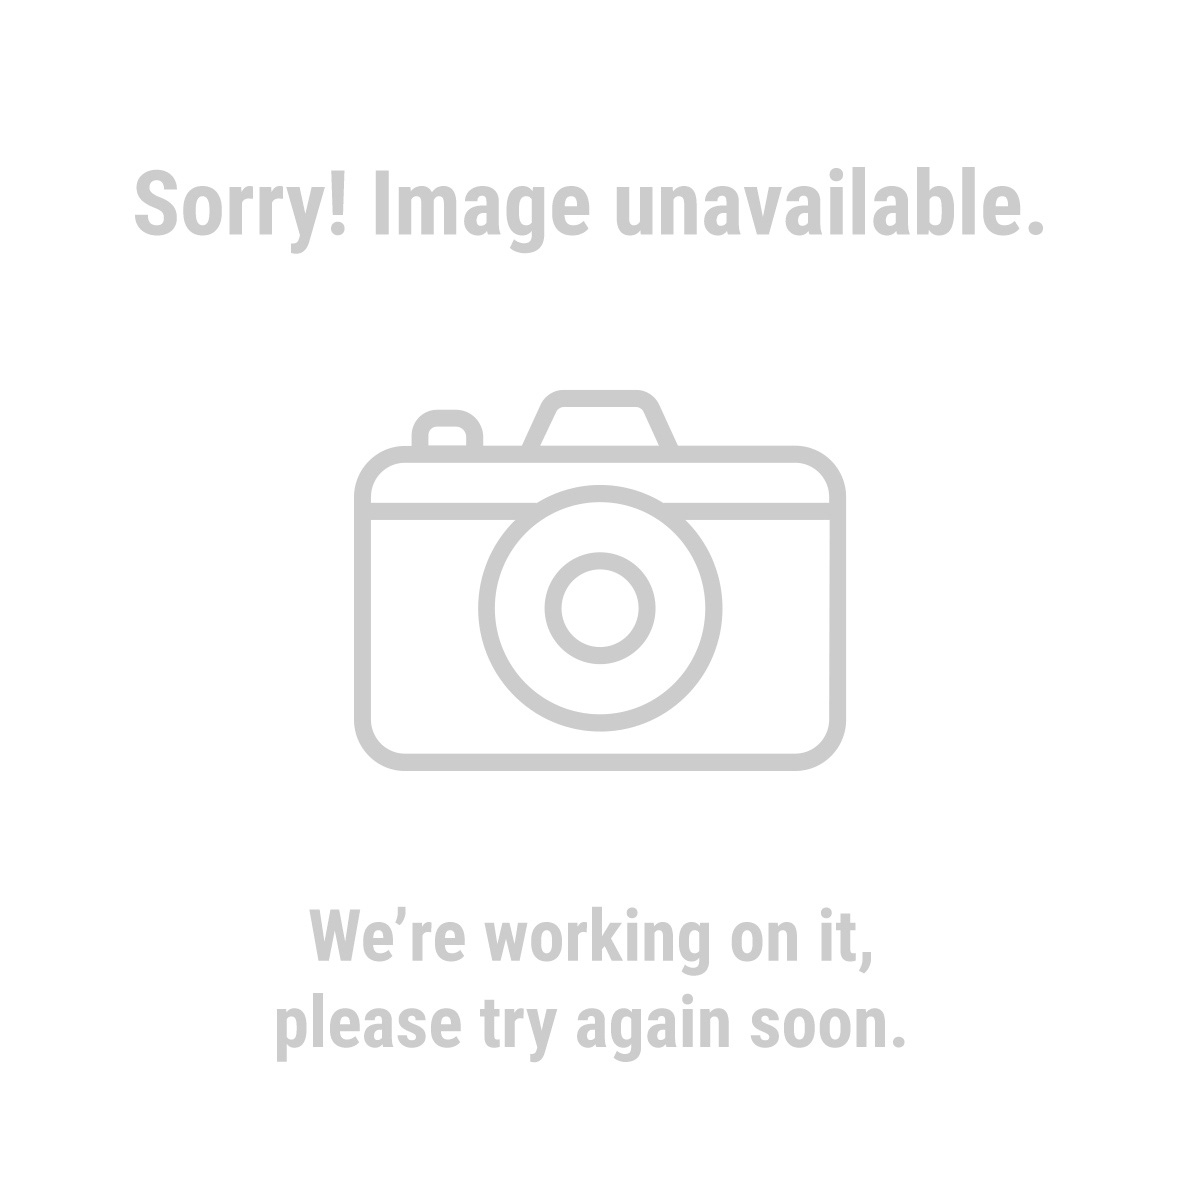 HARDY 66292 5 Pair Leather Palm Patch Gloves